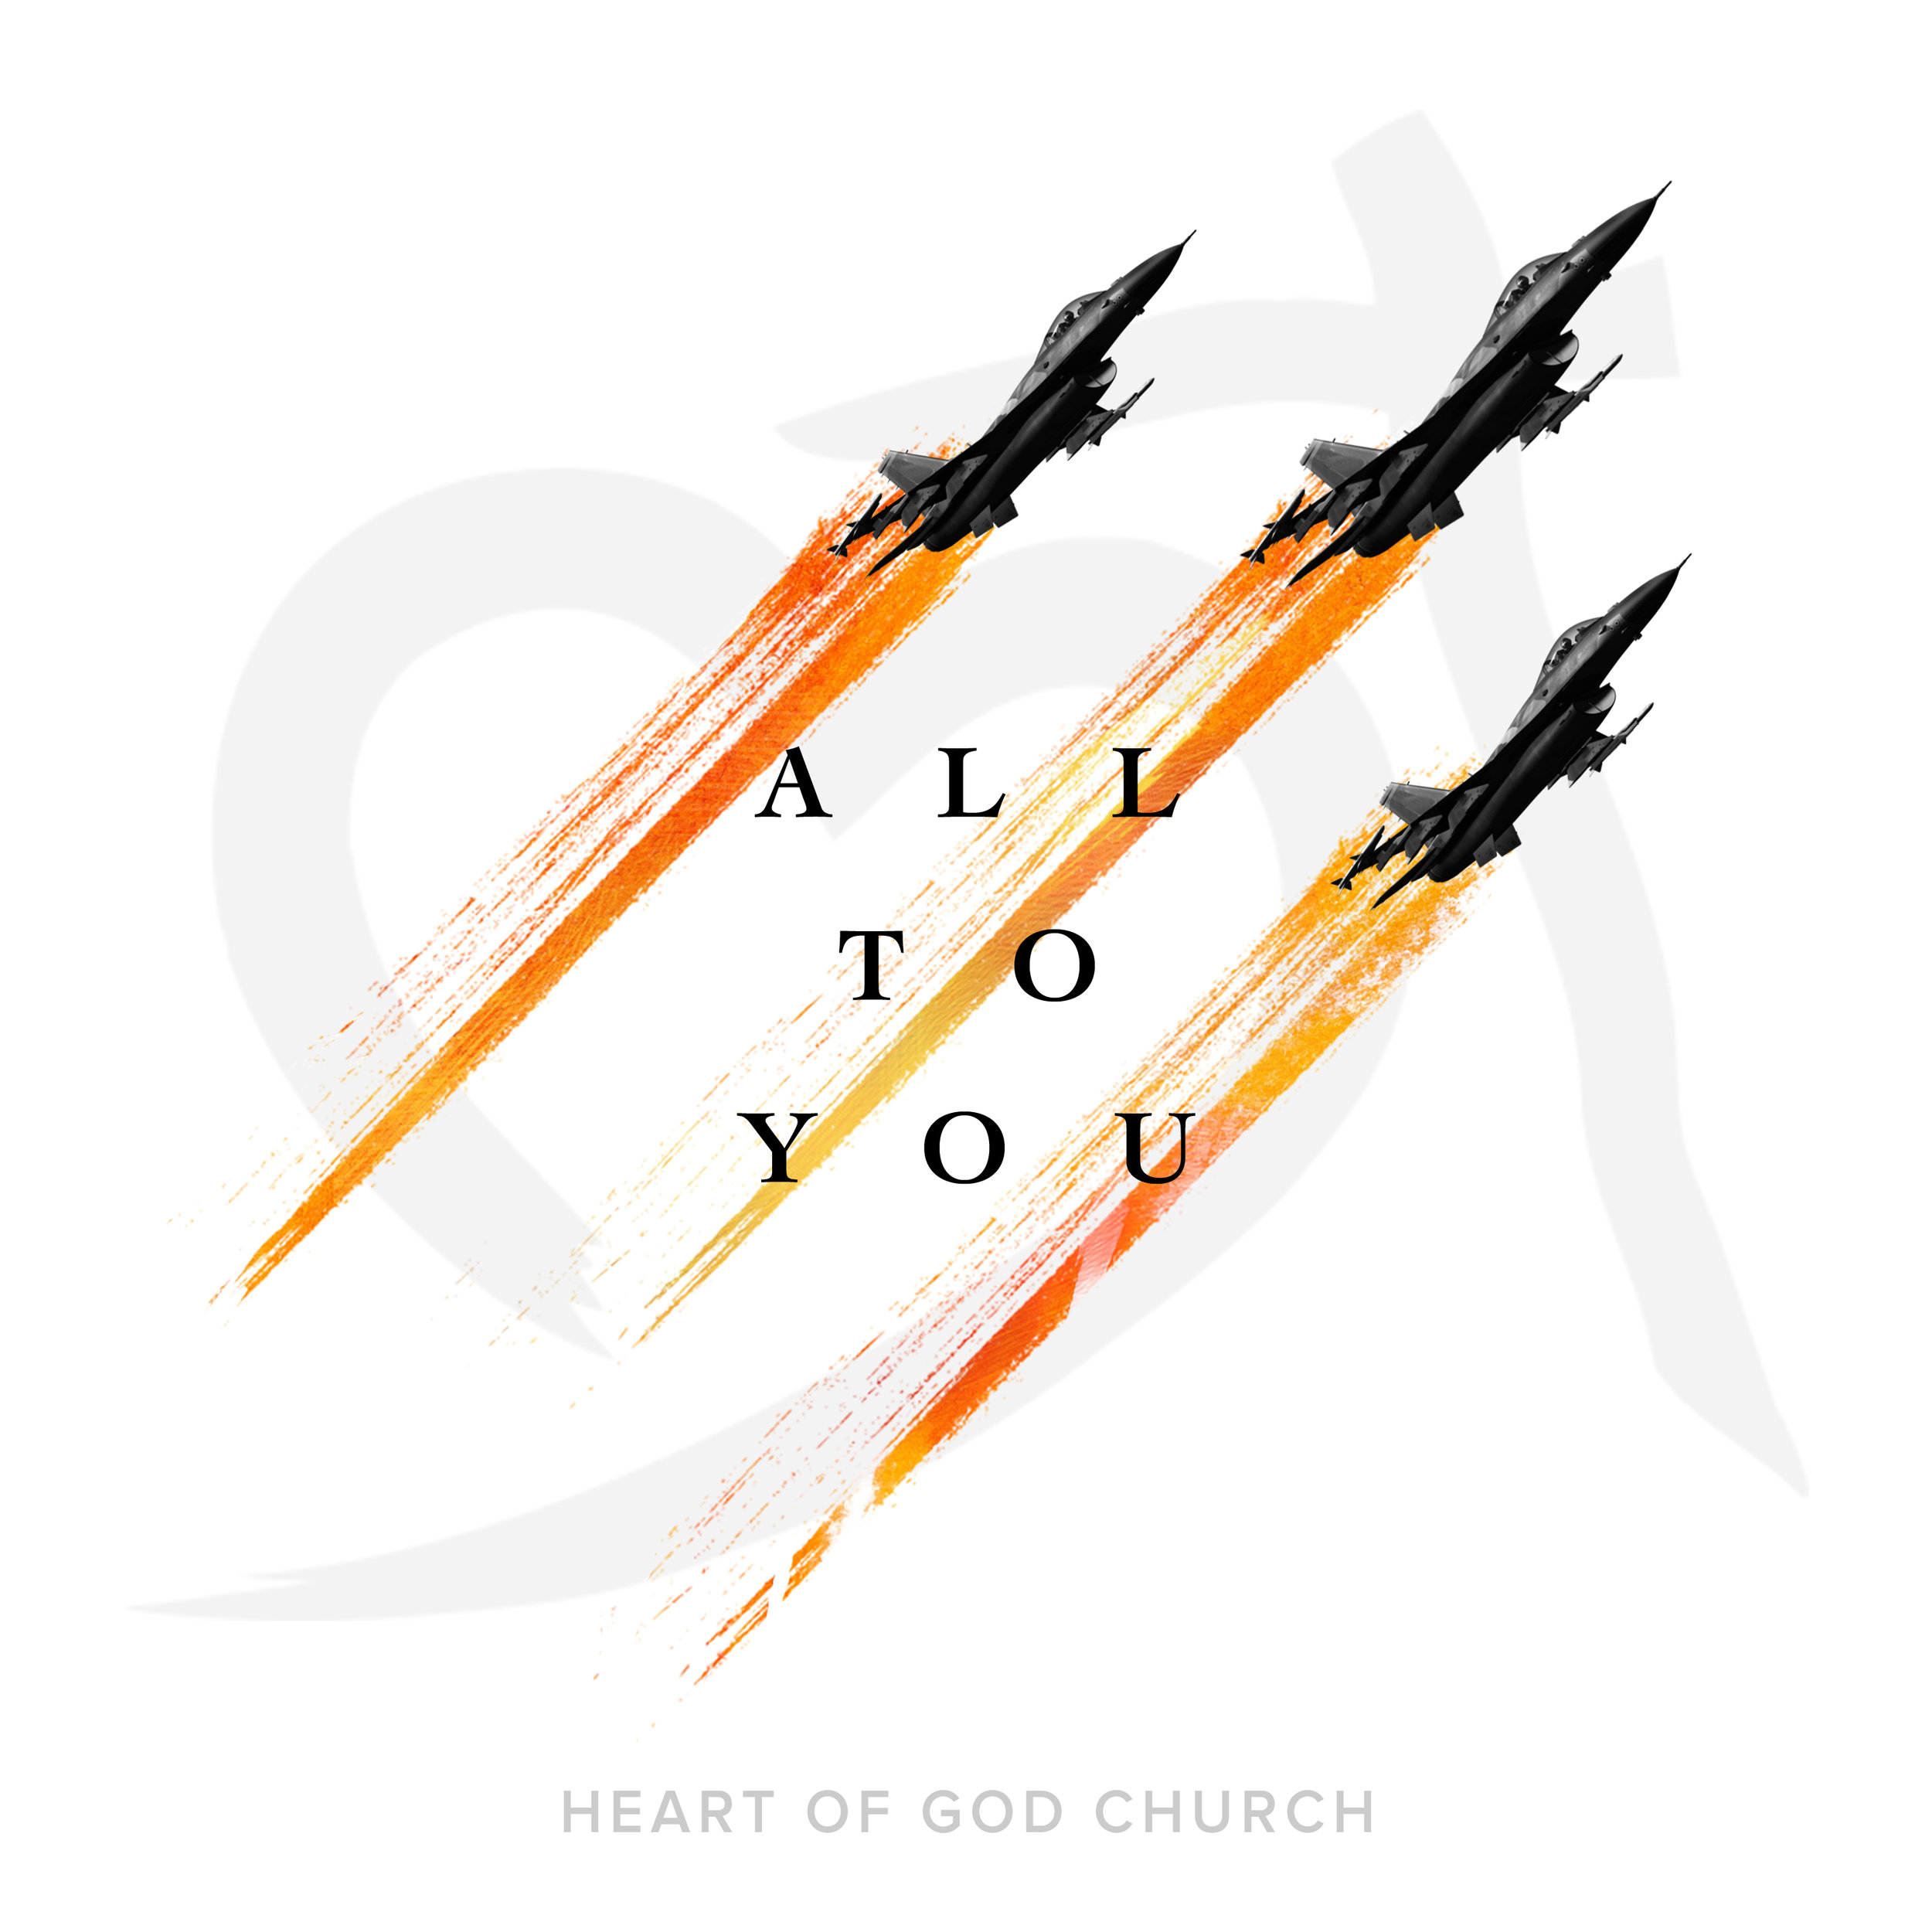 Heart of God Church_ All To You Single_3000x3000_web2.jpg